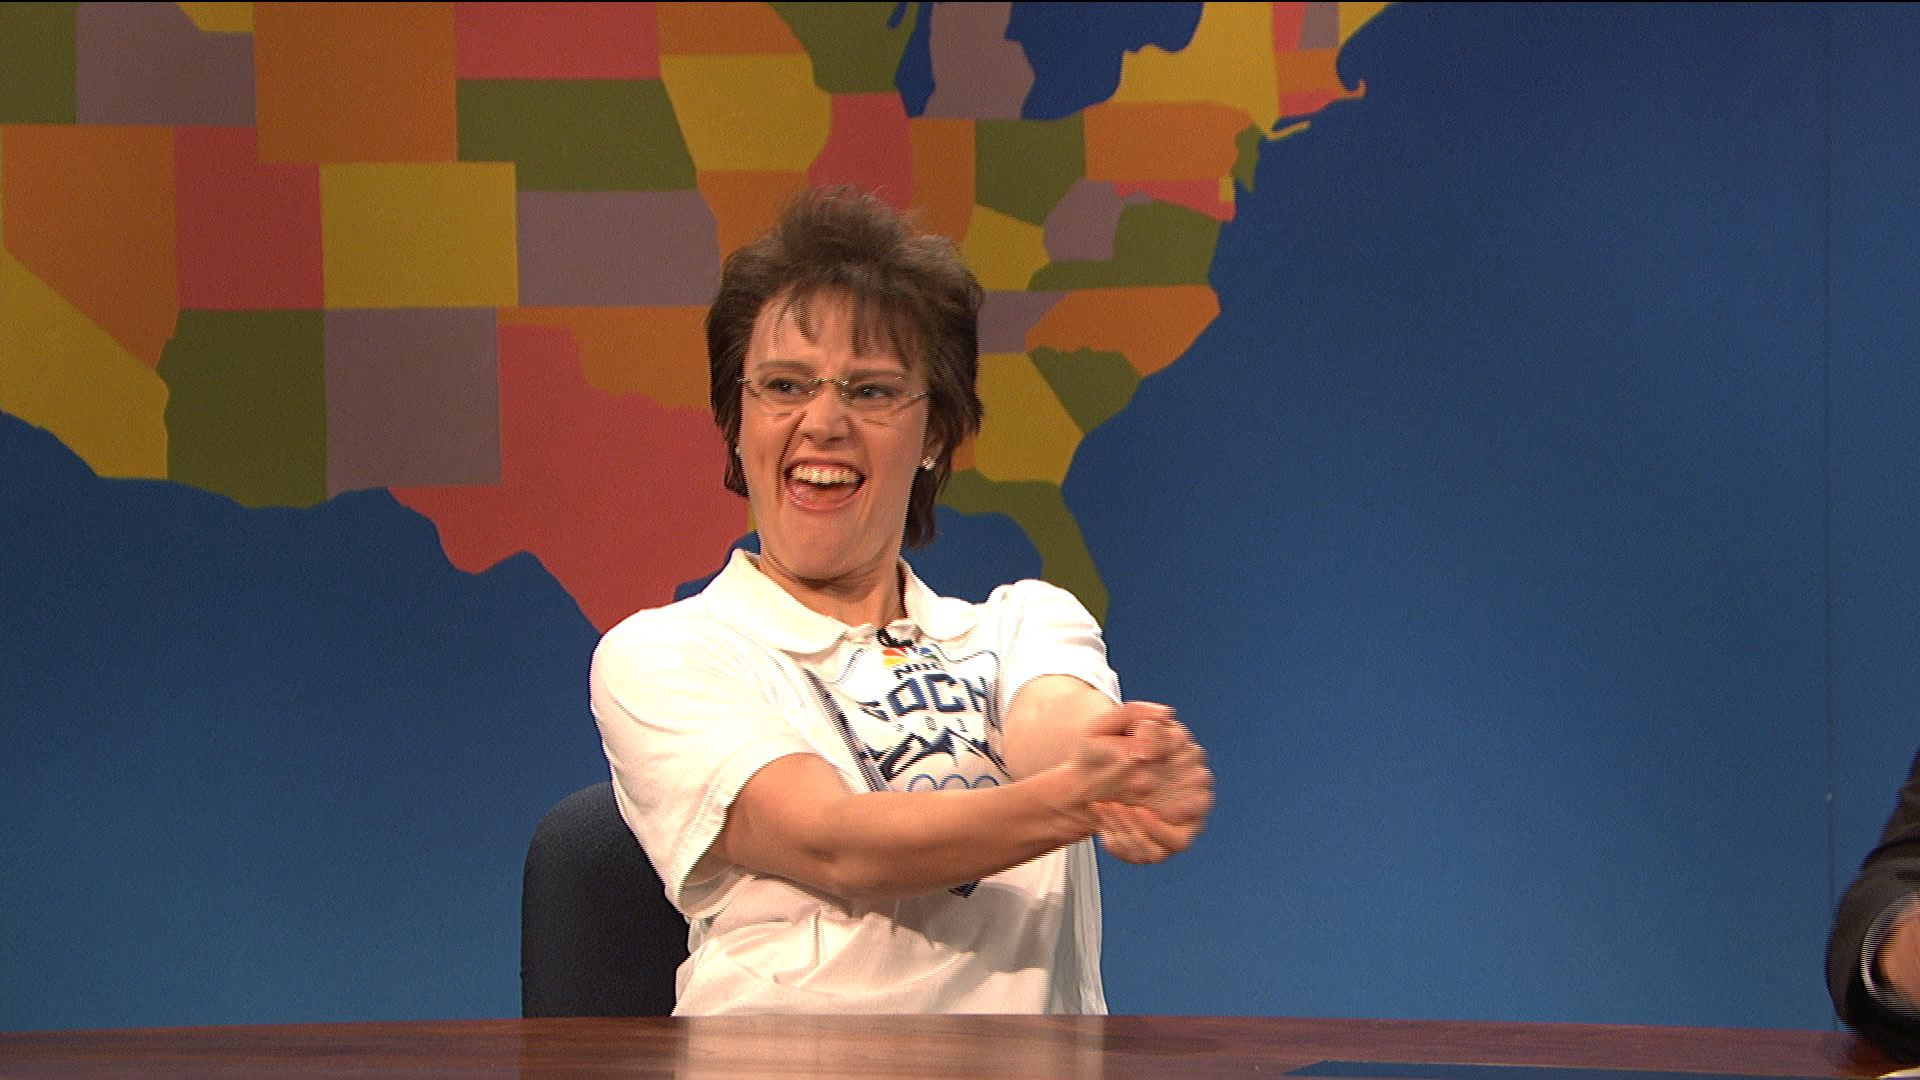 Watch Billie Jean King Sketches From SNL Played By Kate McKinnon